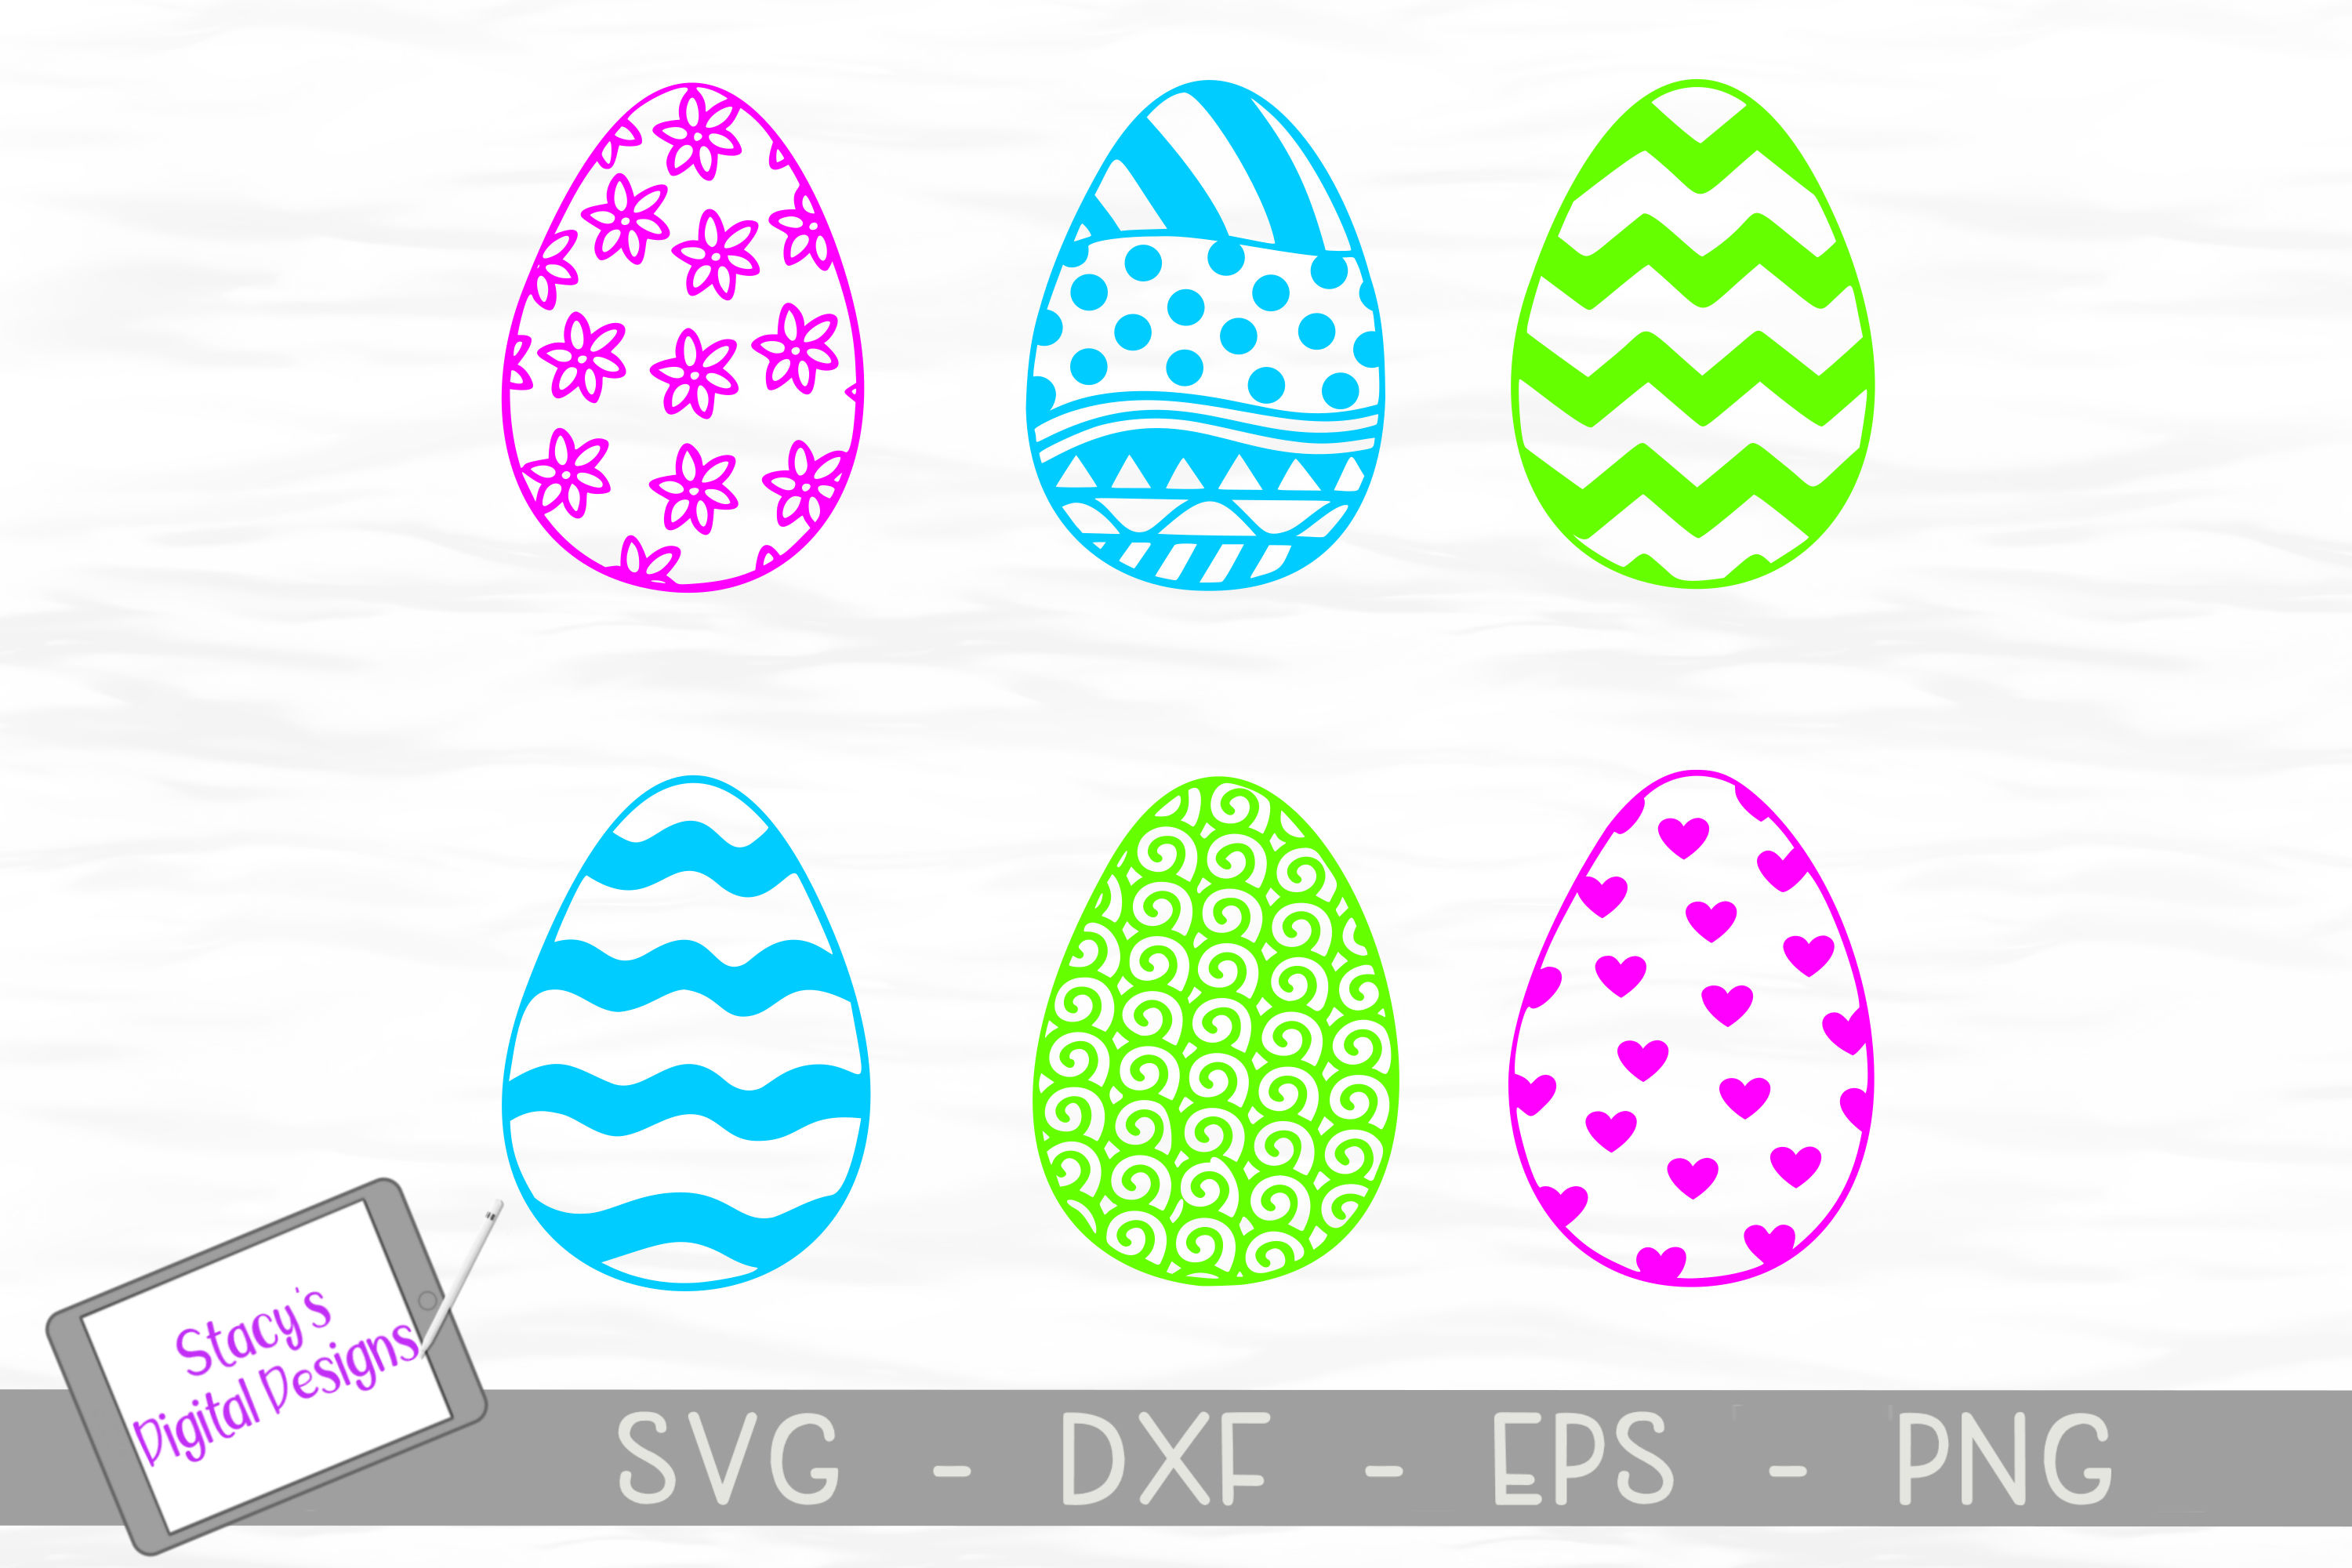 Download Free Easter Eggs Bundle Eggs Graphic By Stacysdigitaldesigns for Cricut Explore, Silhouette and other cutting machines.